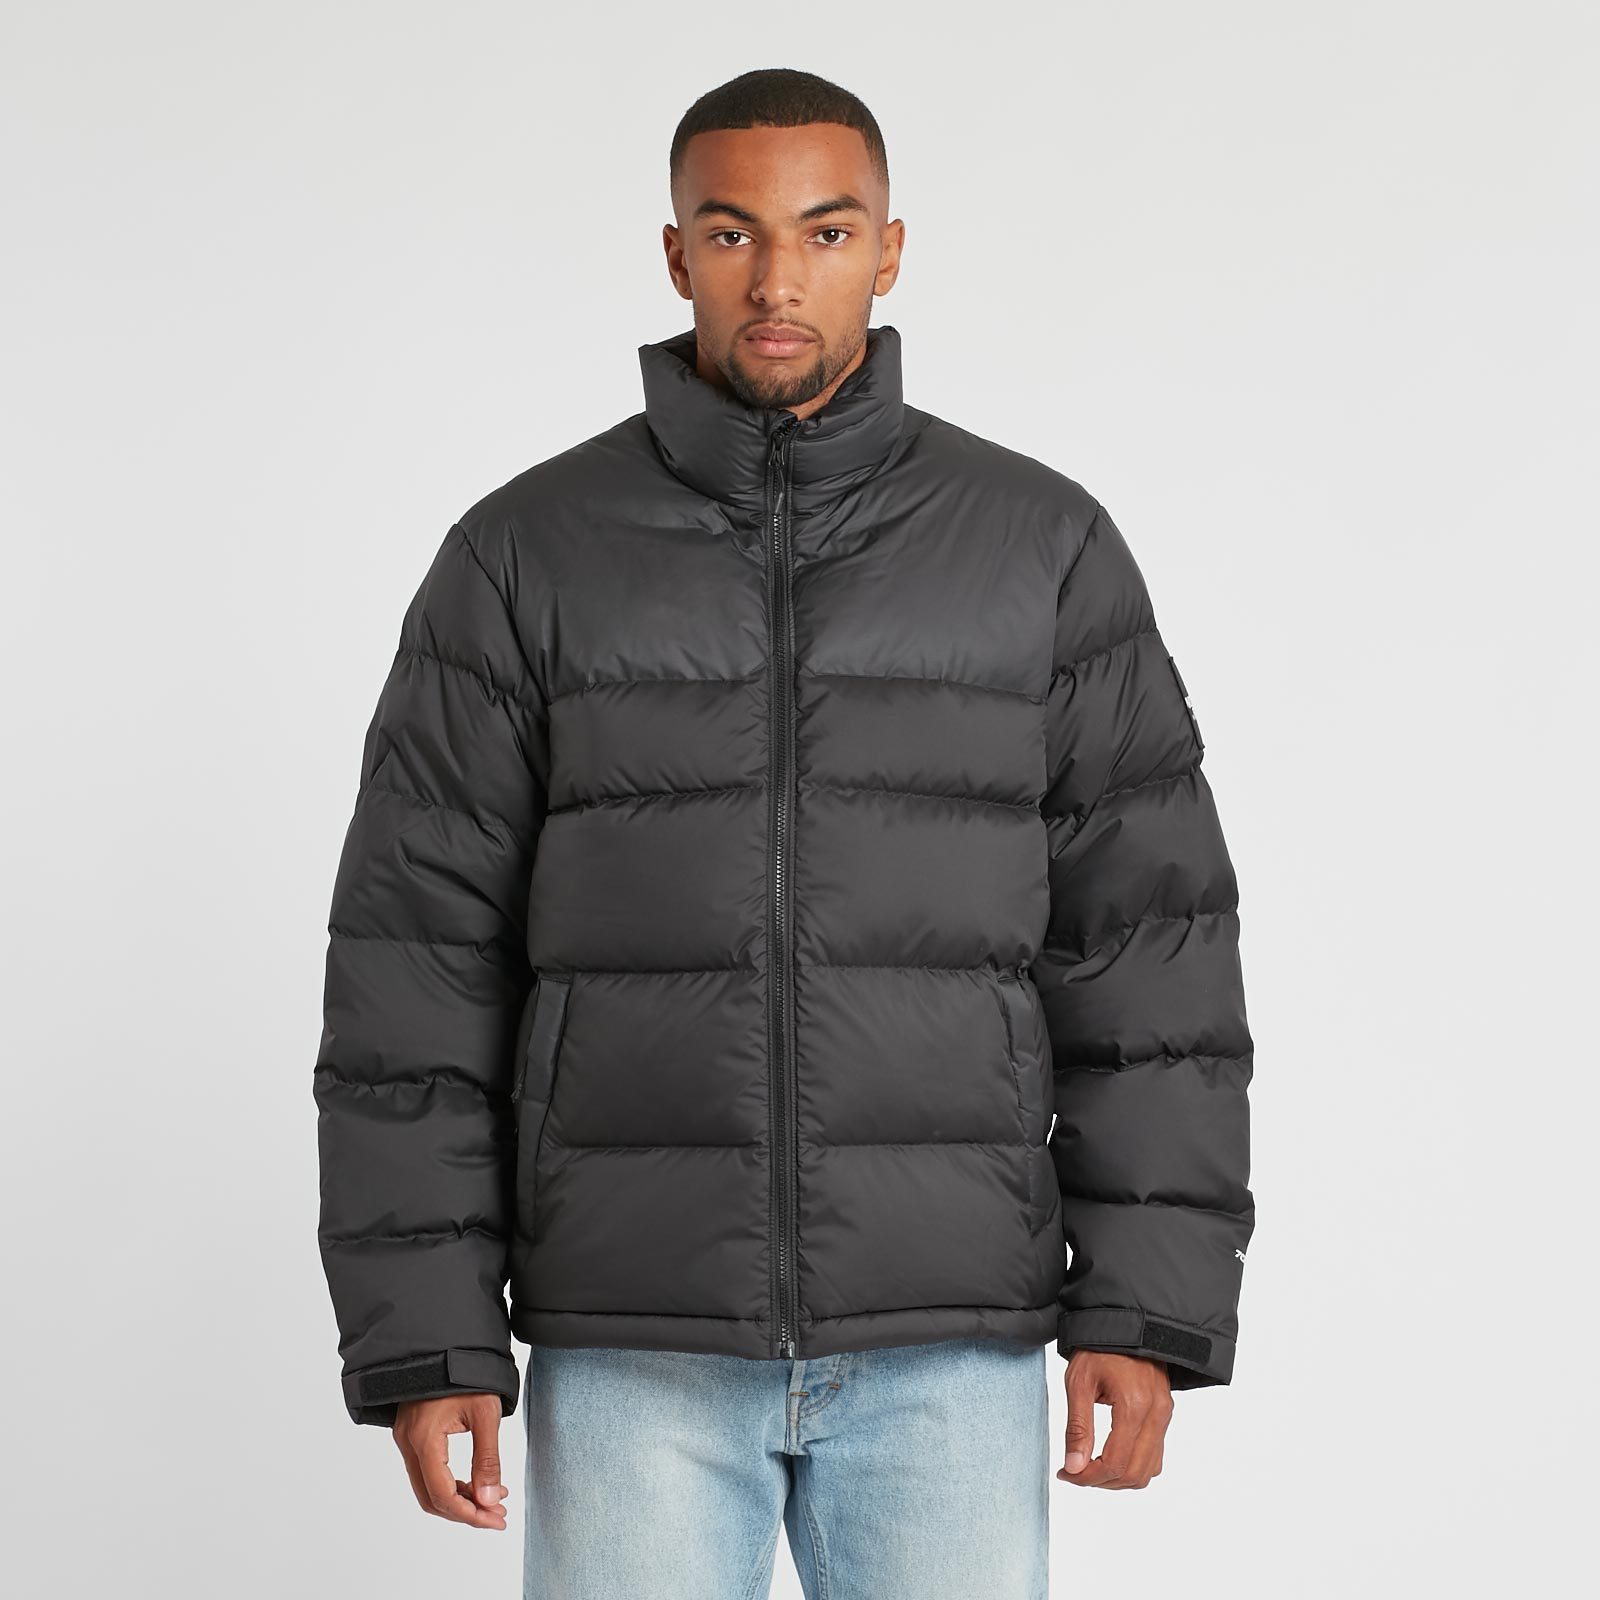 c630e1fdc863 The North Face M 1992 Nuptse Jacket - T92zwejk3 - Sneakersnstuff ...